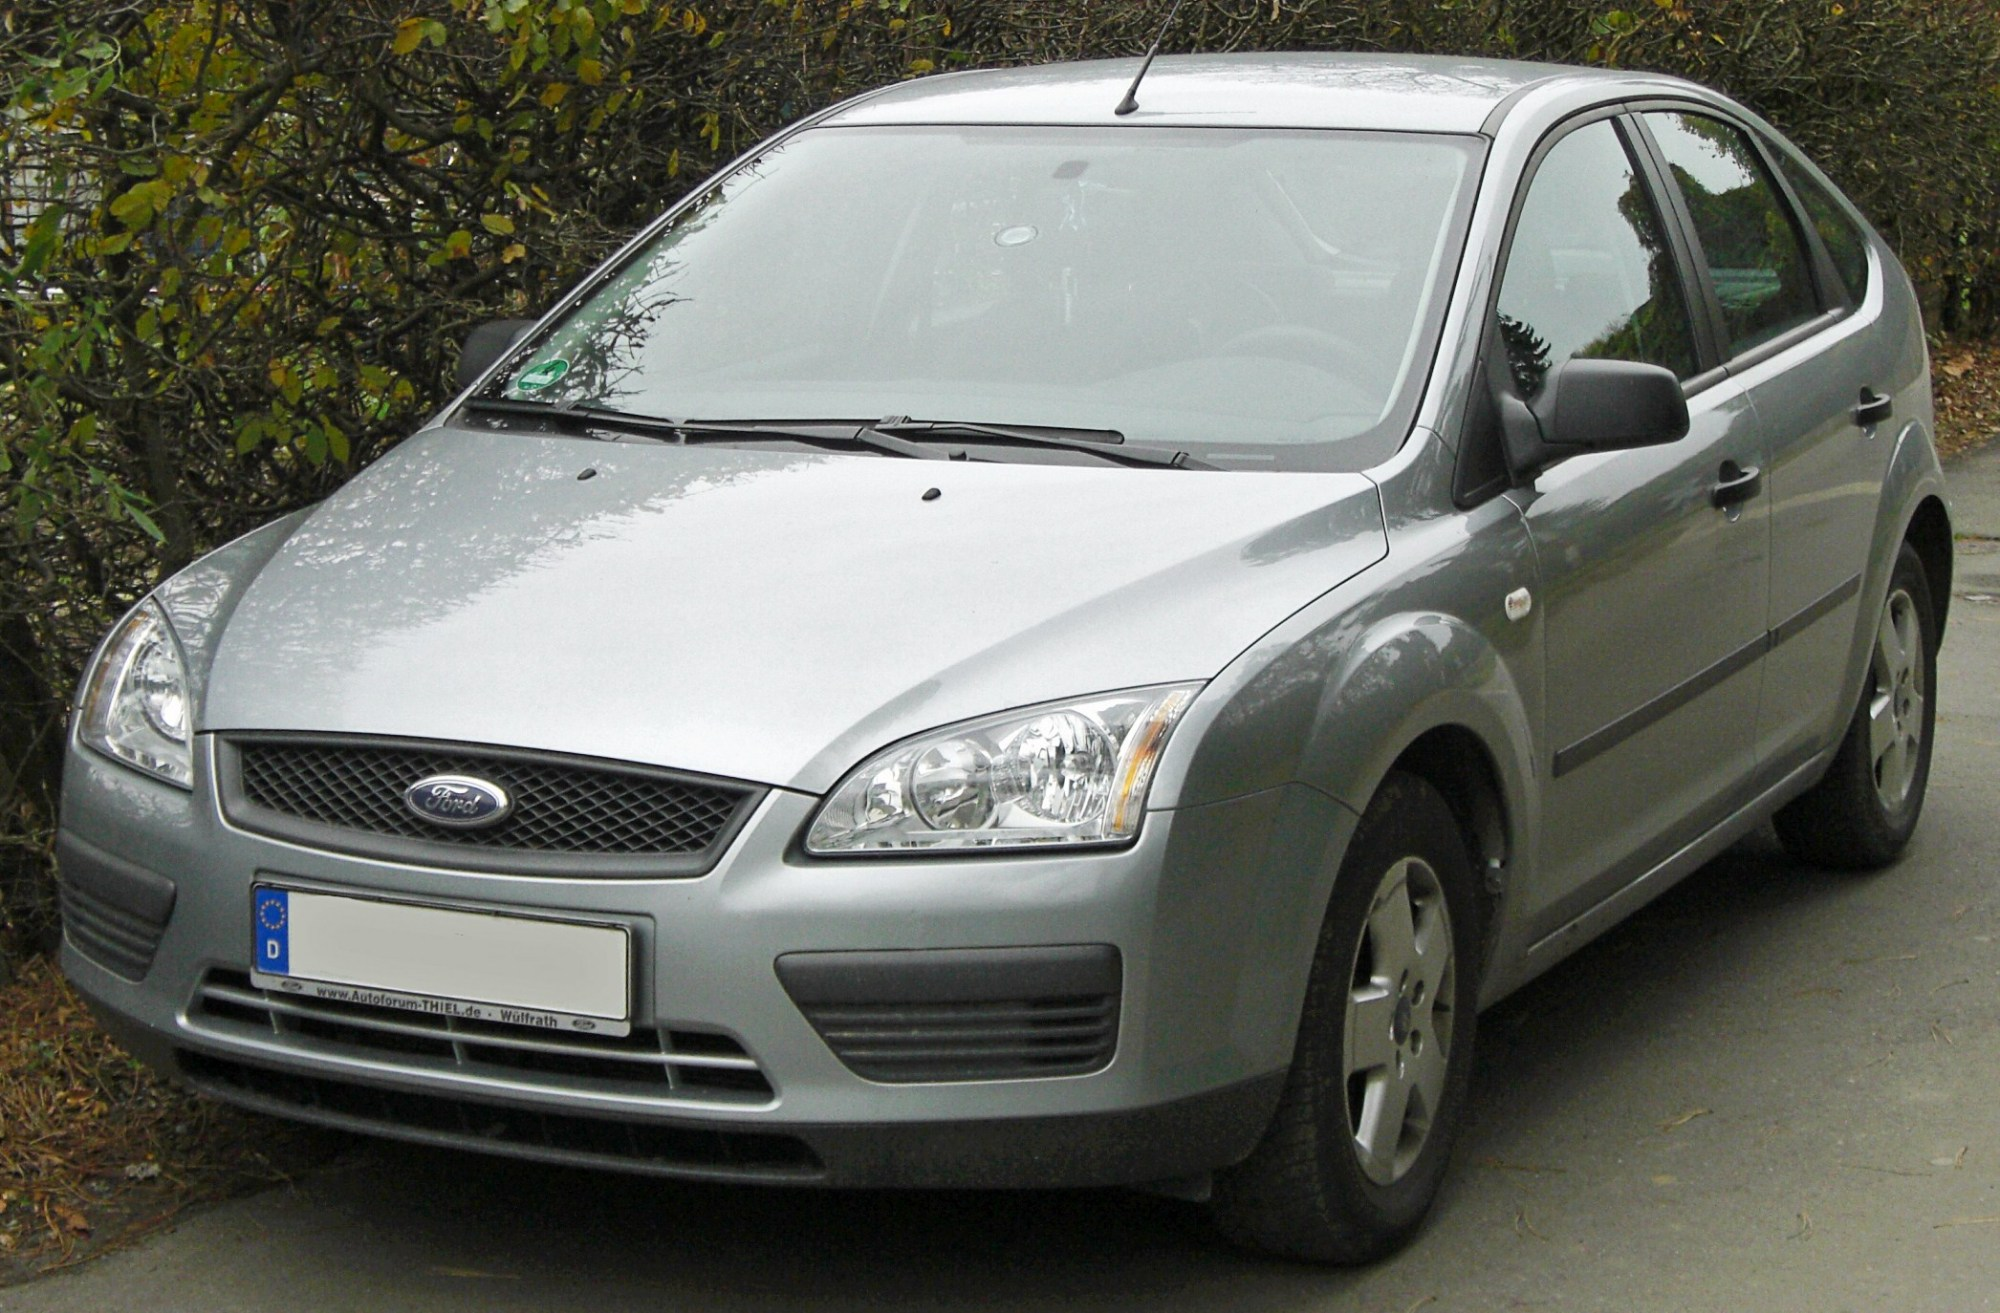 hight resolution of ford focus ii 2004 2008 front mj difference between a 2000 focus and a citroen relay fuse box